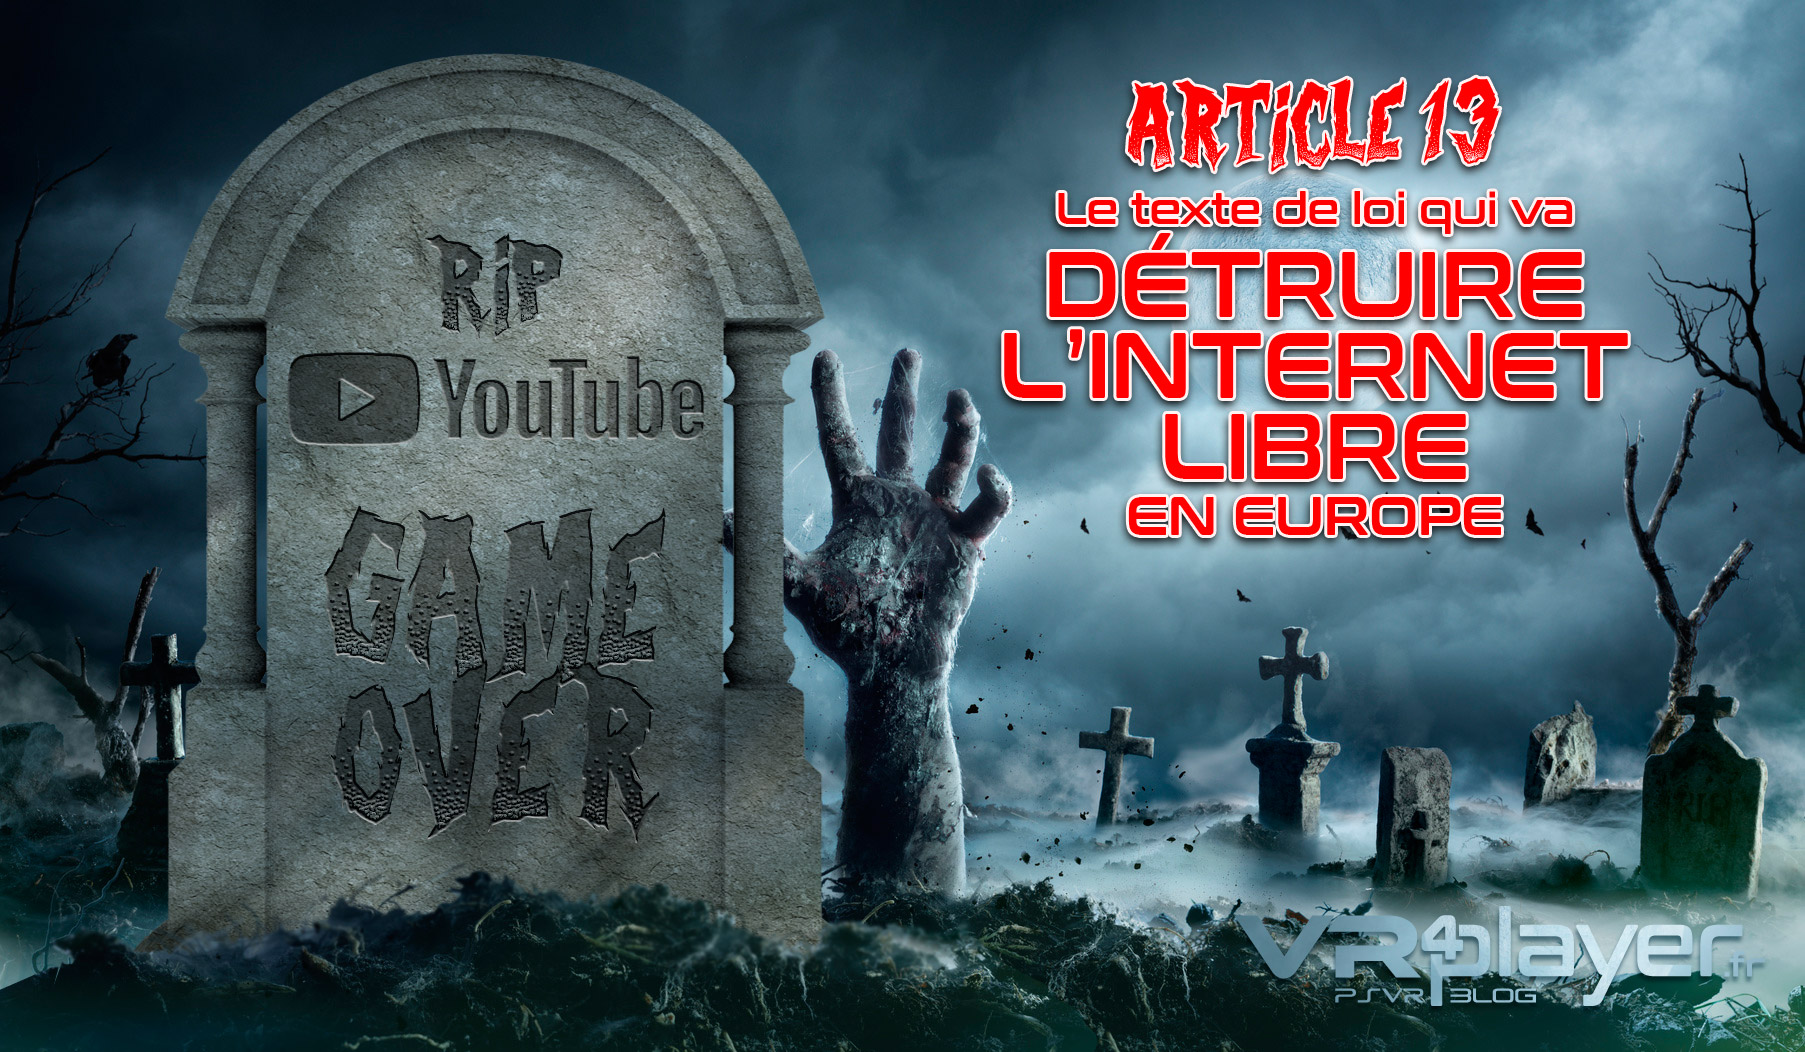 Article 13, la mort de Youtube et de l'internent Libre VR4player